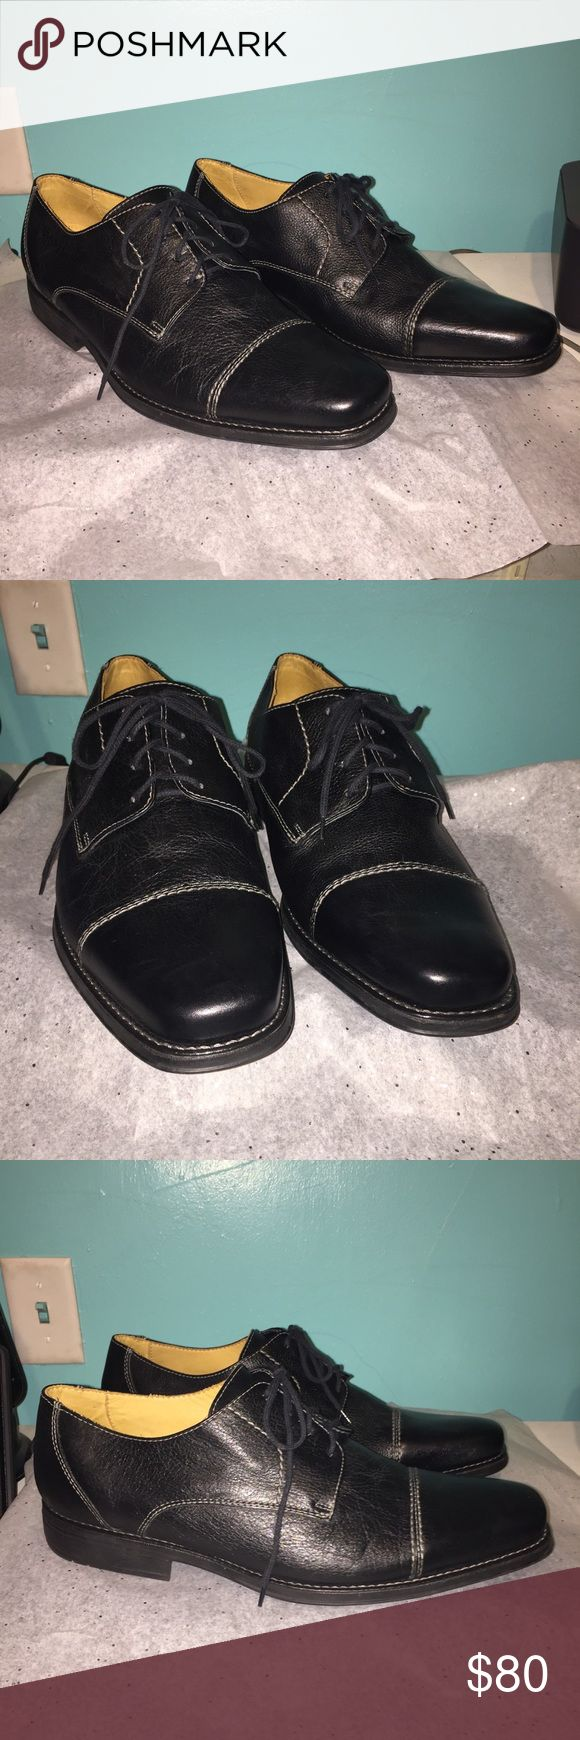 Sandro Moscoloni shoes These look almost brand new my husband only wore them once for a wedding. The insole is so soft and squishy. Amazing quality! Sandro Moscoloni Shoes Oxfords & Derbys